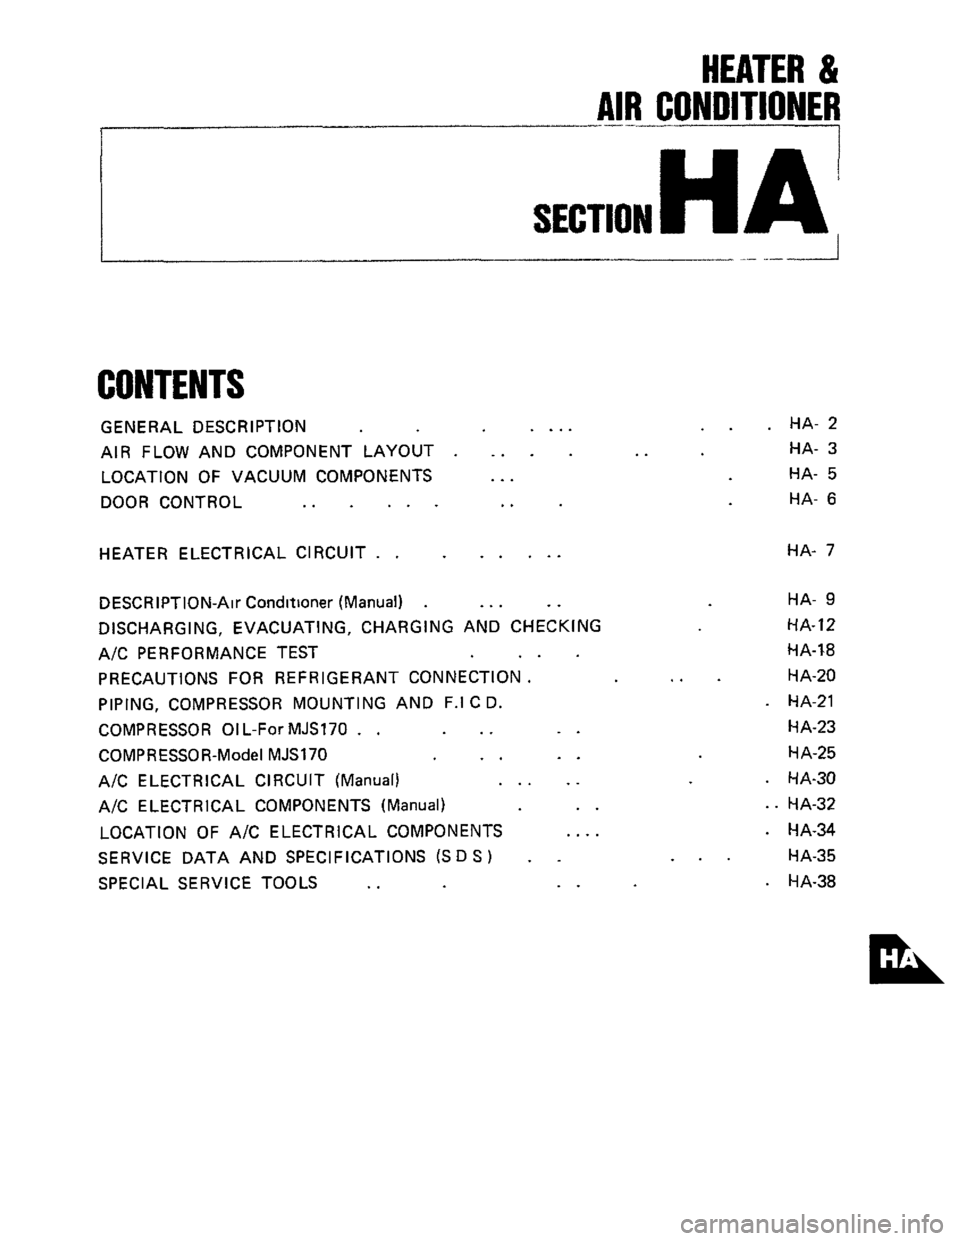 NISSAN 300ZX 1984 Z31 Heather And Air Conditioner Workshop Manual, Page 1